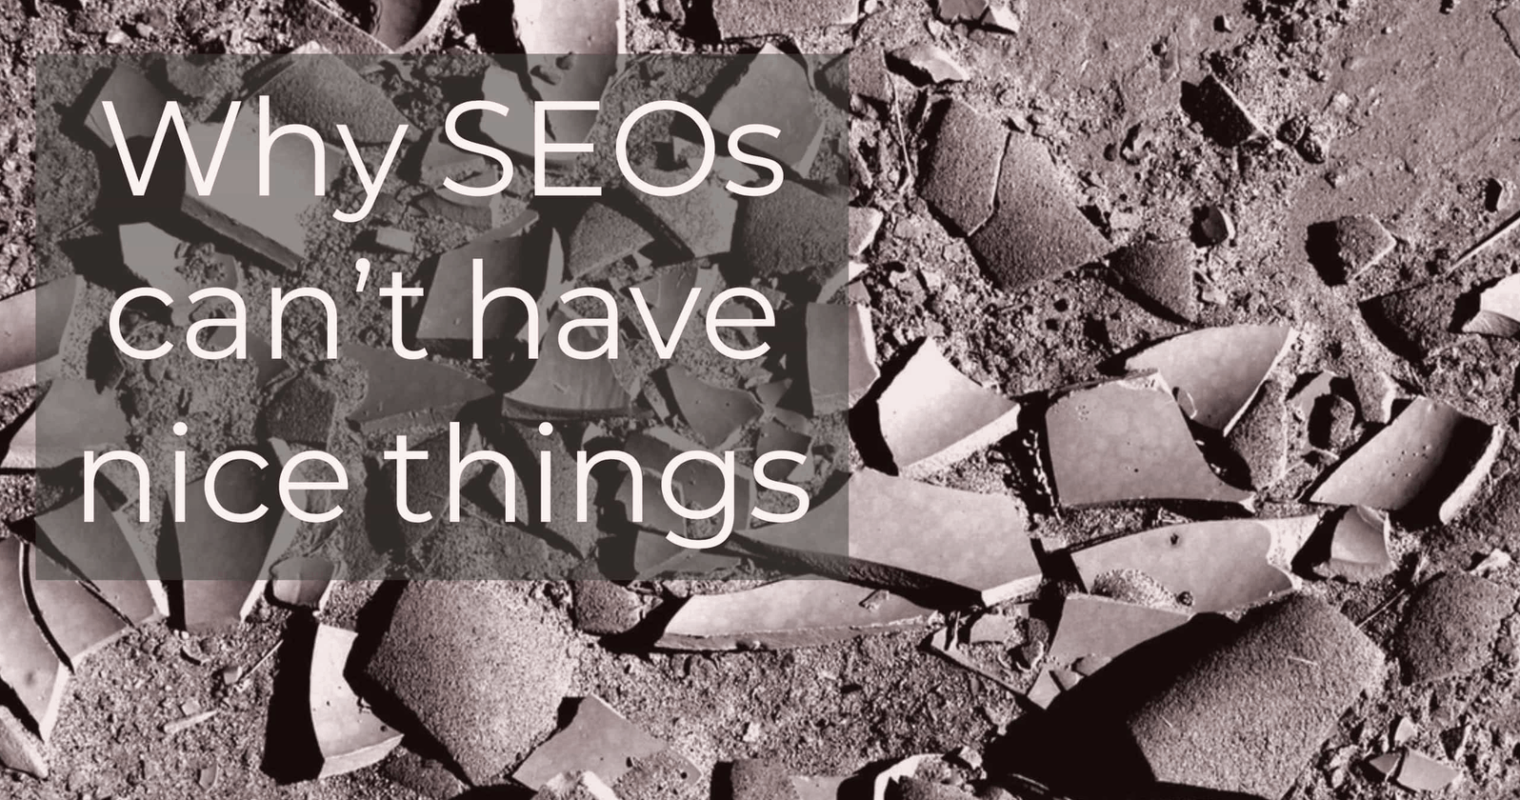 SEOs: This Is Why We Can't Have Nice Things